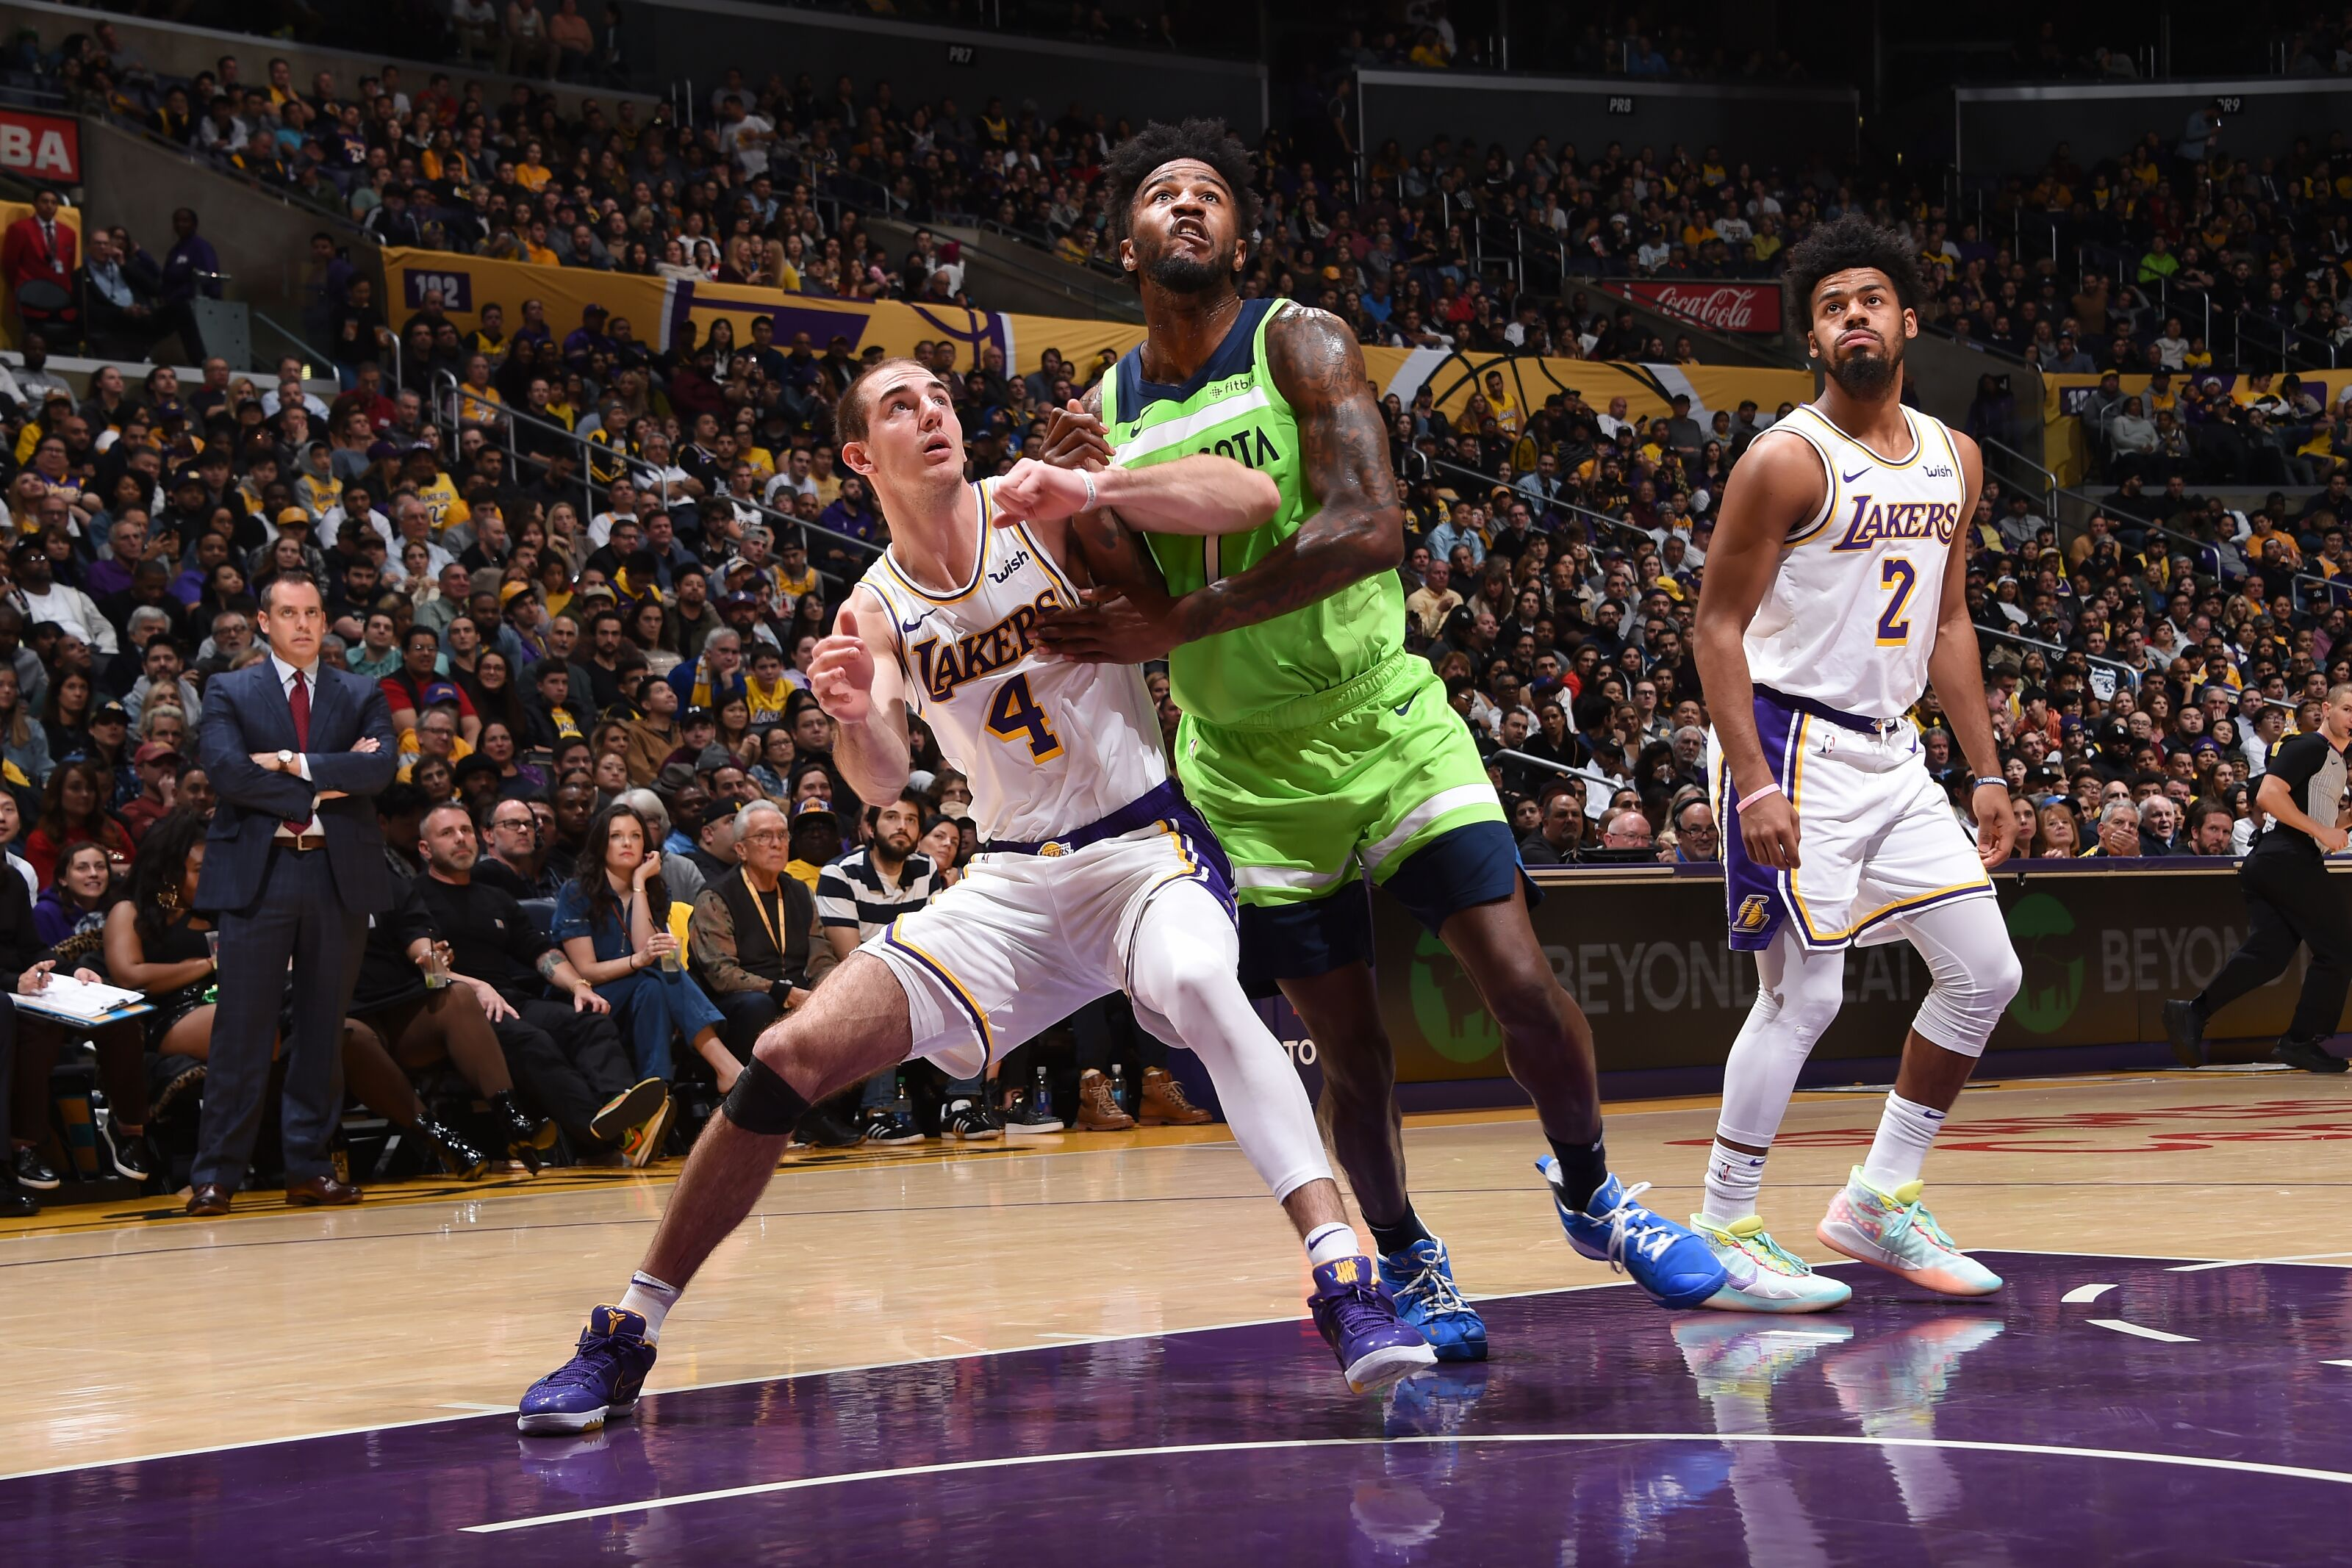 Los Angeles Lakers: Alex Caruso continues to prove his worth following win over Timberwolves